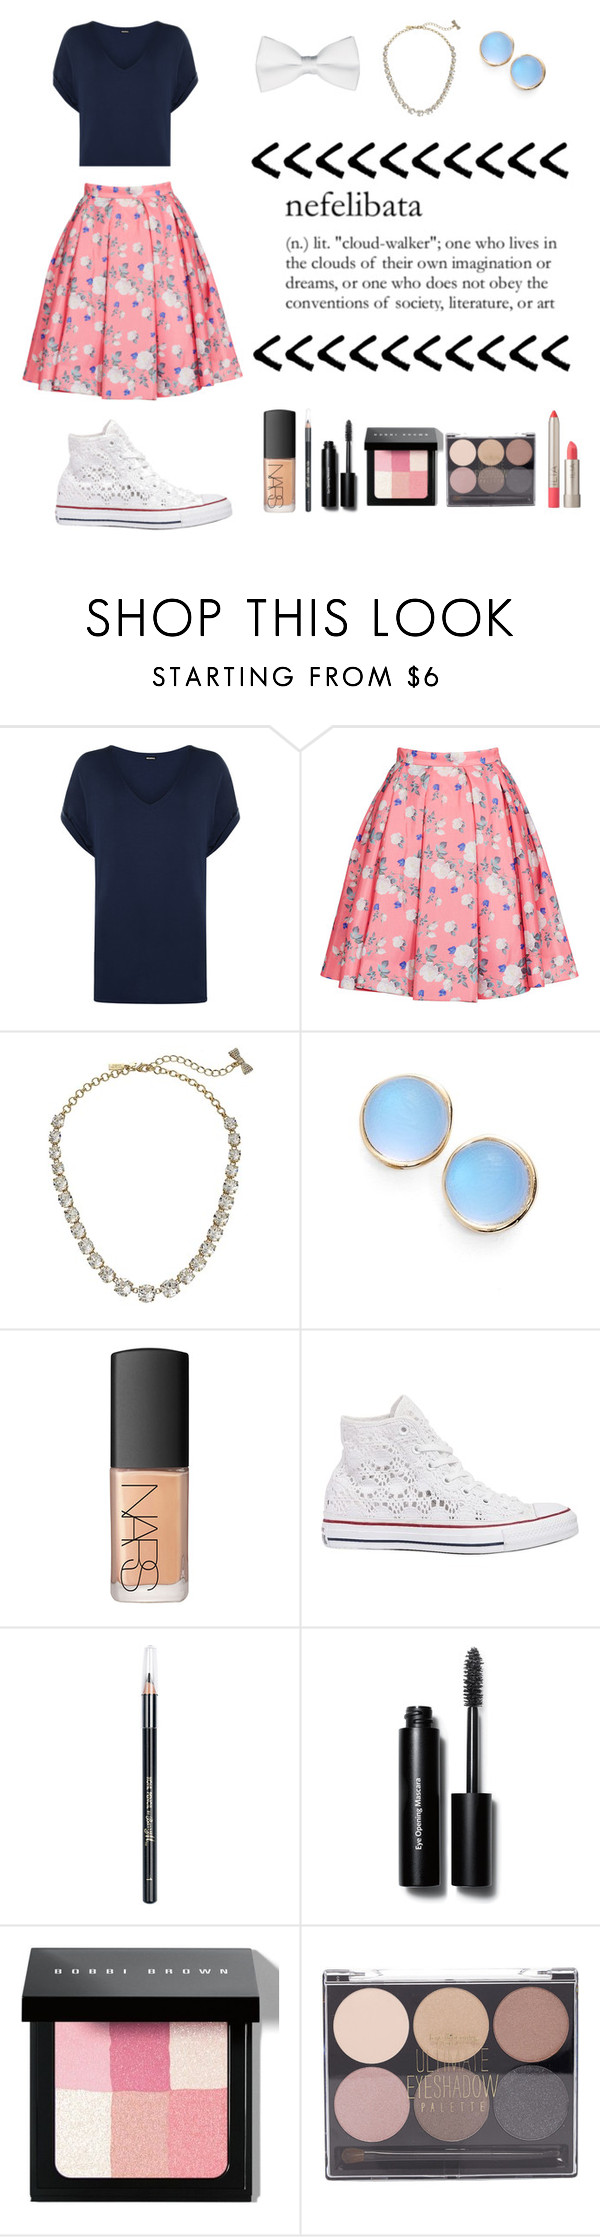 """Nefelibata"" by alexis-517 ❤ liked on Polyvore featuring WearAll, ERIN Erin Fetherston, Kate Spade, Alexis Bittar, NARS Cosmetics, Converse, Barry M, Bobbi Brown Cosmetics, Forever 21 and Ilia"